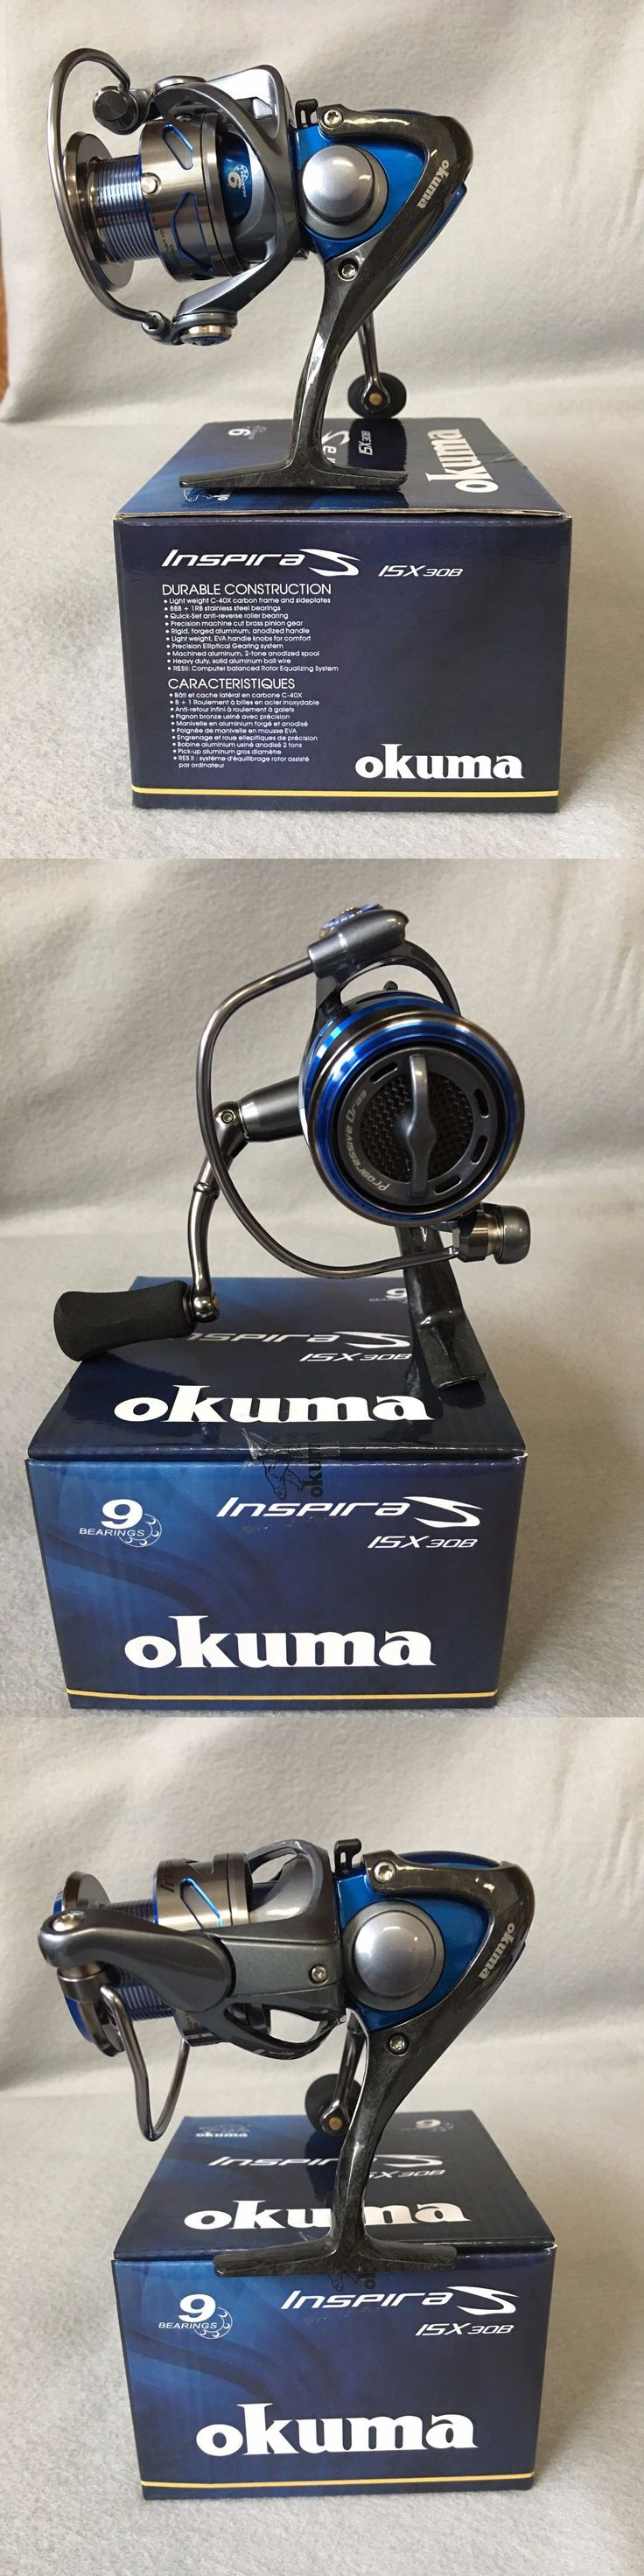 Spinning Reels 36147: Okuma Isx-30B Inspira Spinning Reel - New! -> BUY IT NOW ONLY: $58.99 on eBay!